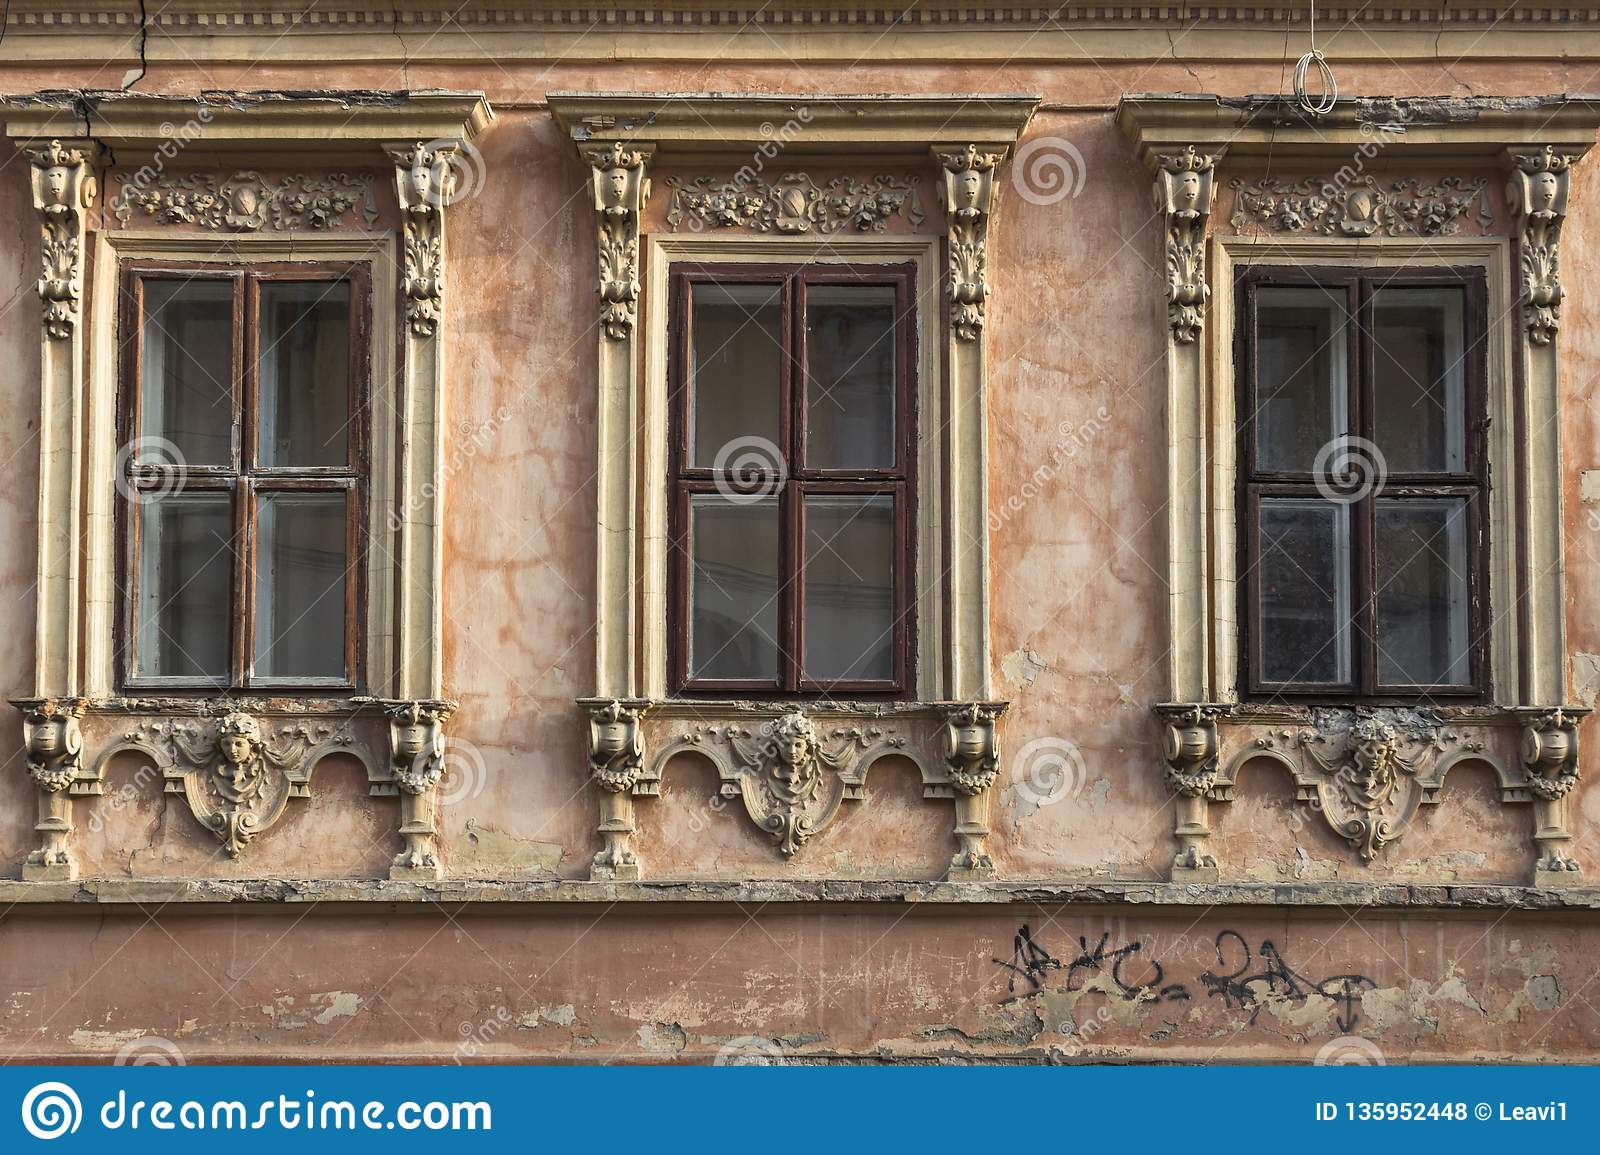 Three windows with carved frames on the facade of the old house